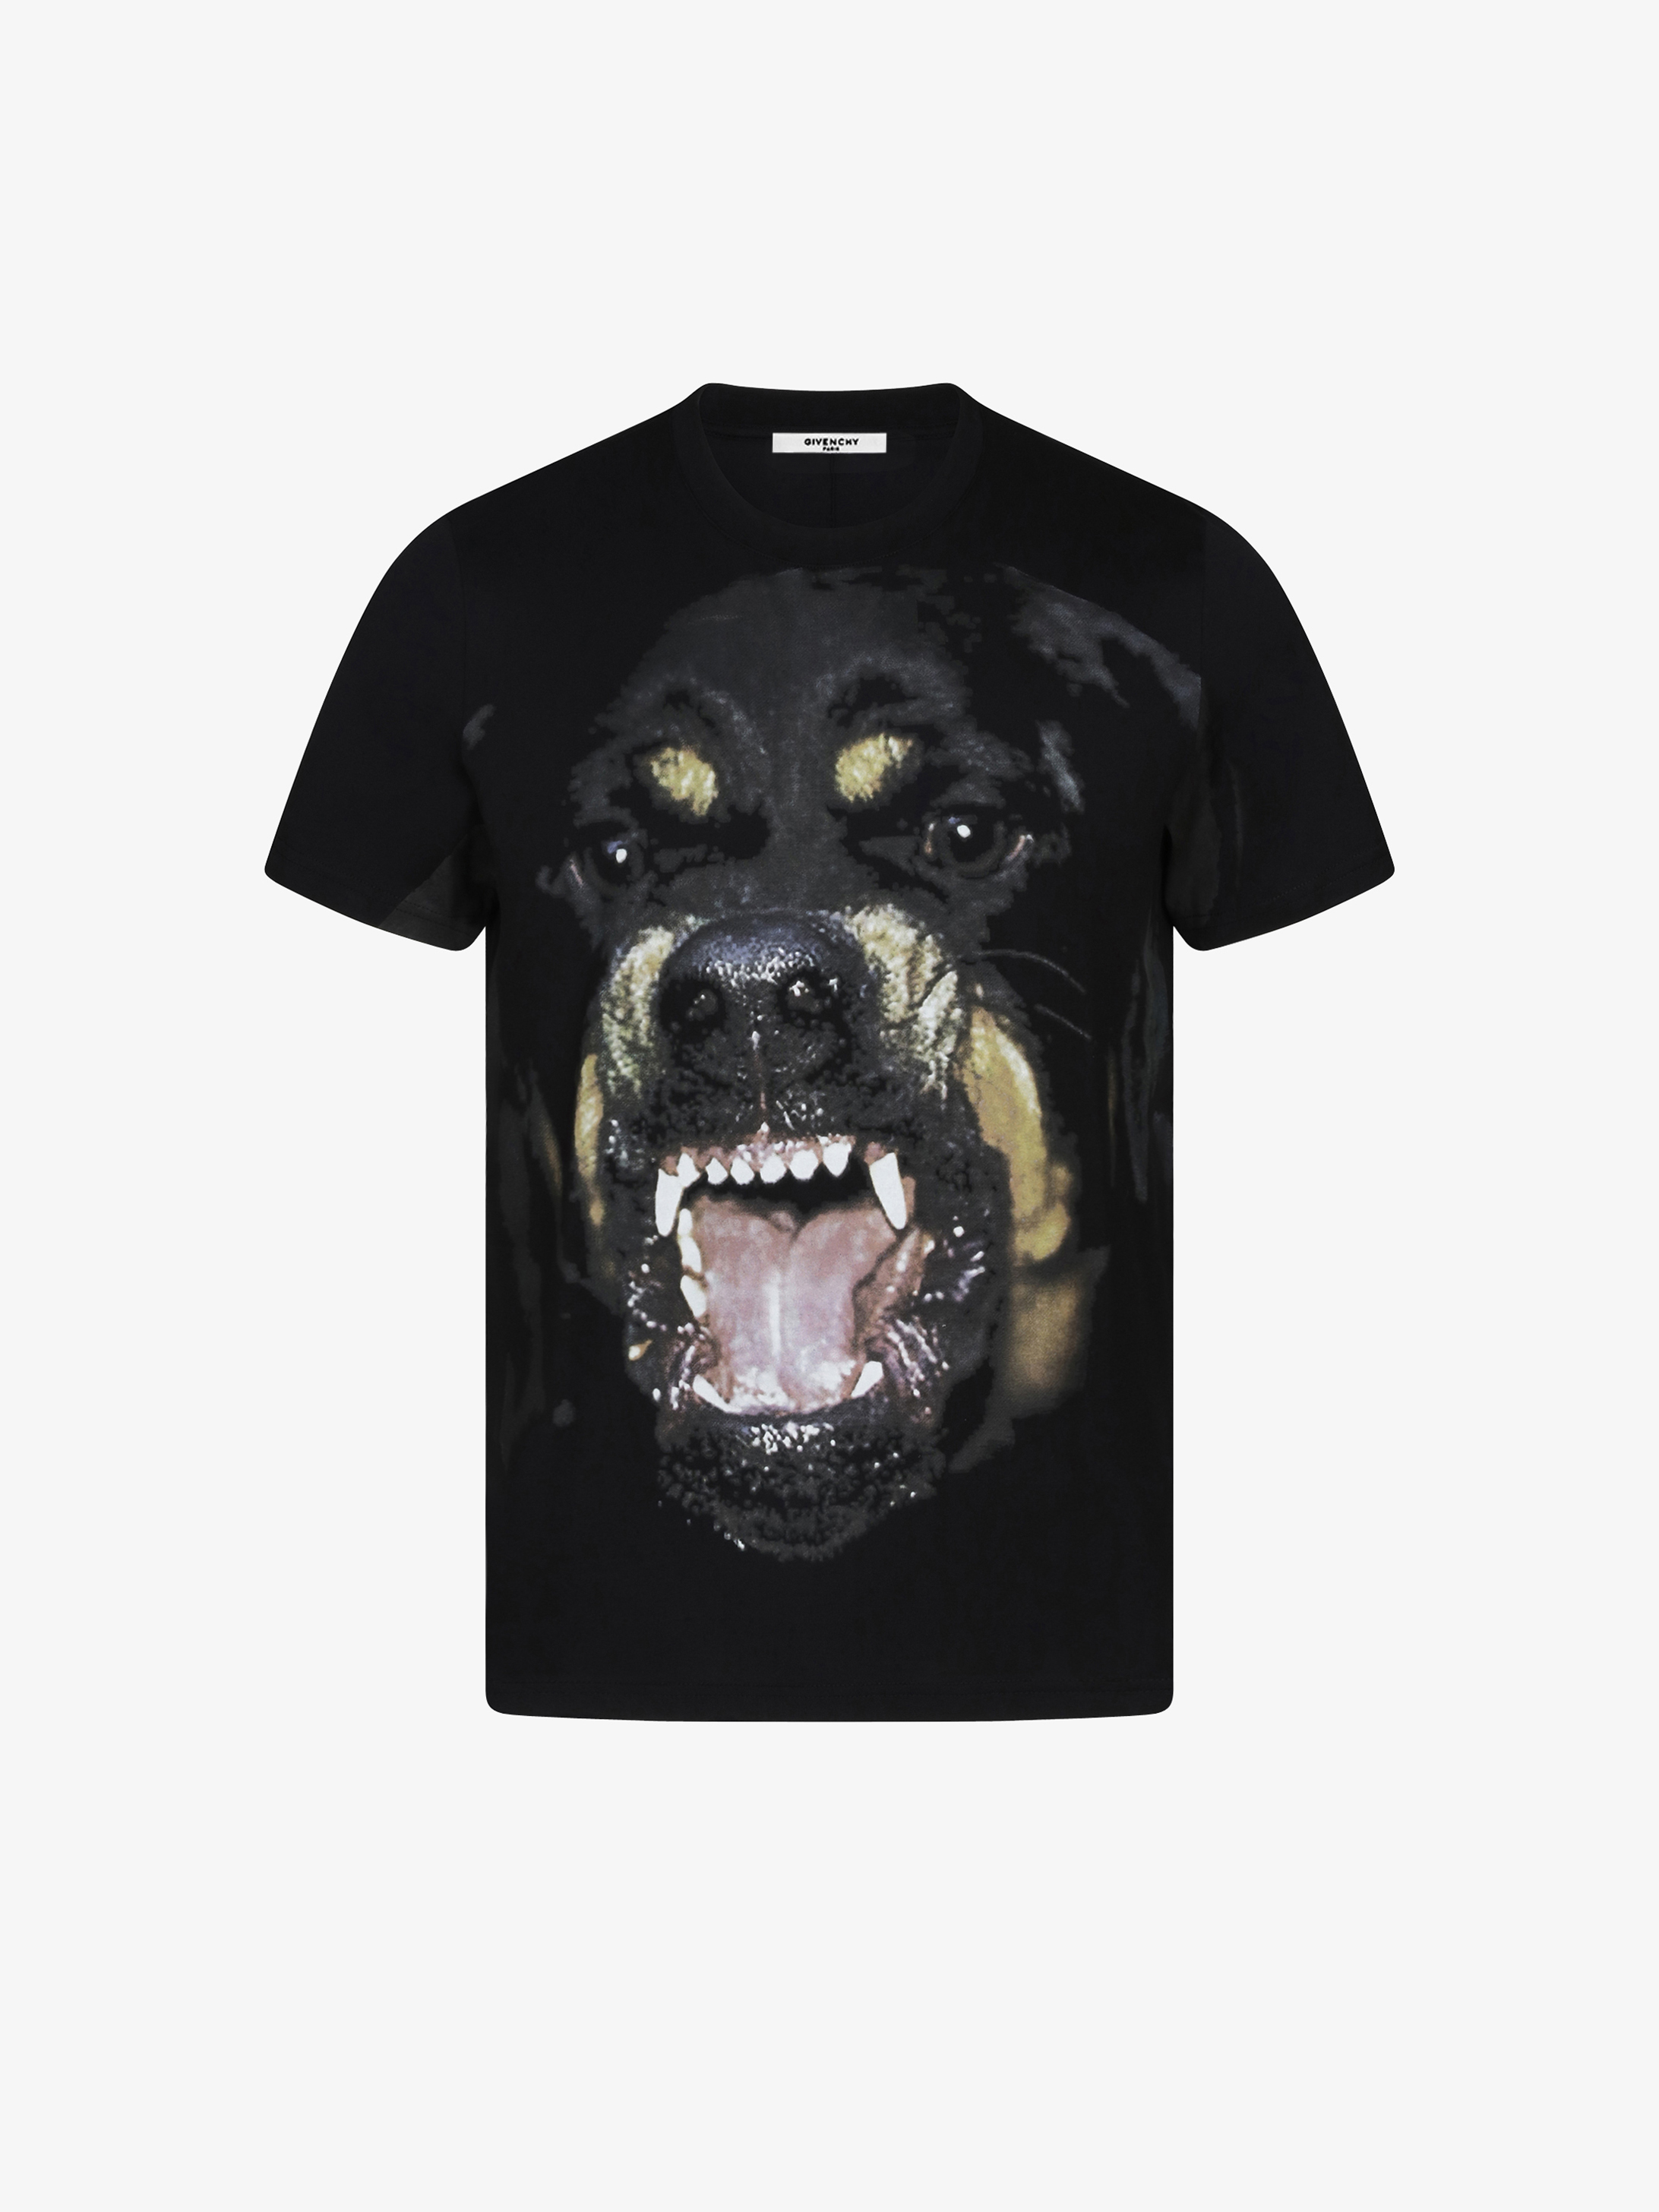 Givenchy Rottweiler Printed T Shirt Givenchy Paris